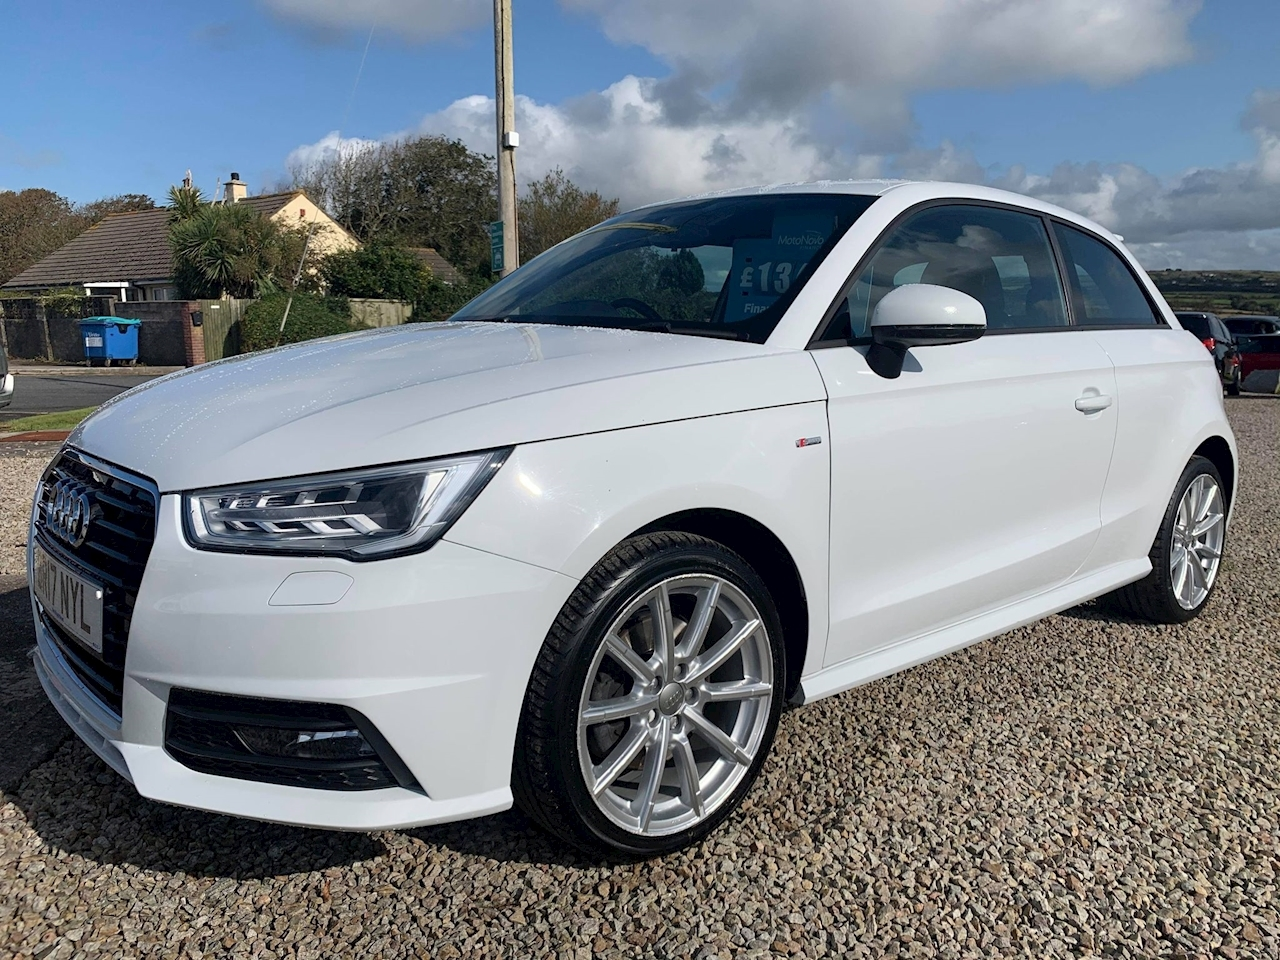 Audi A1 S line Hatchback 1.4 Manual Petrol